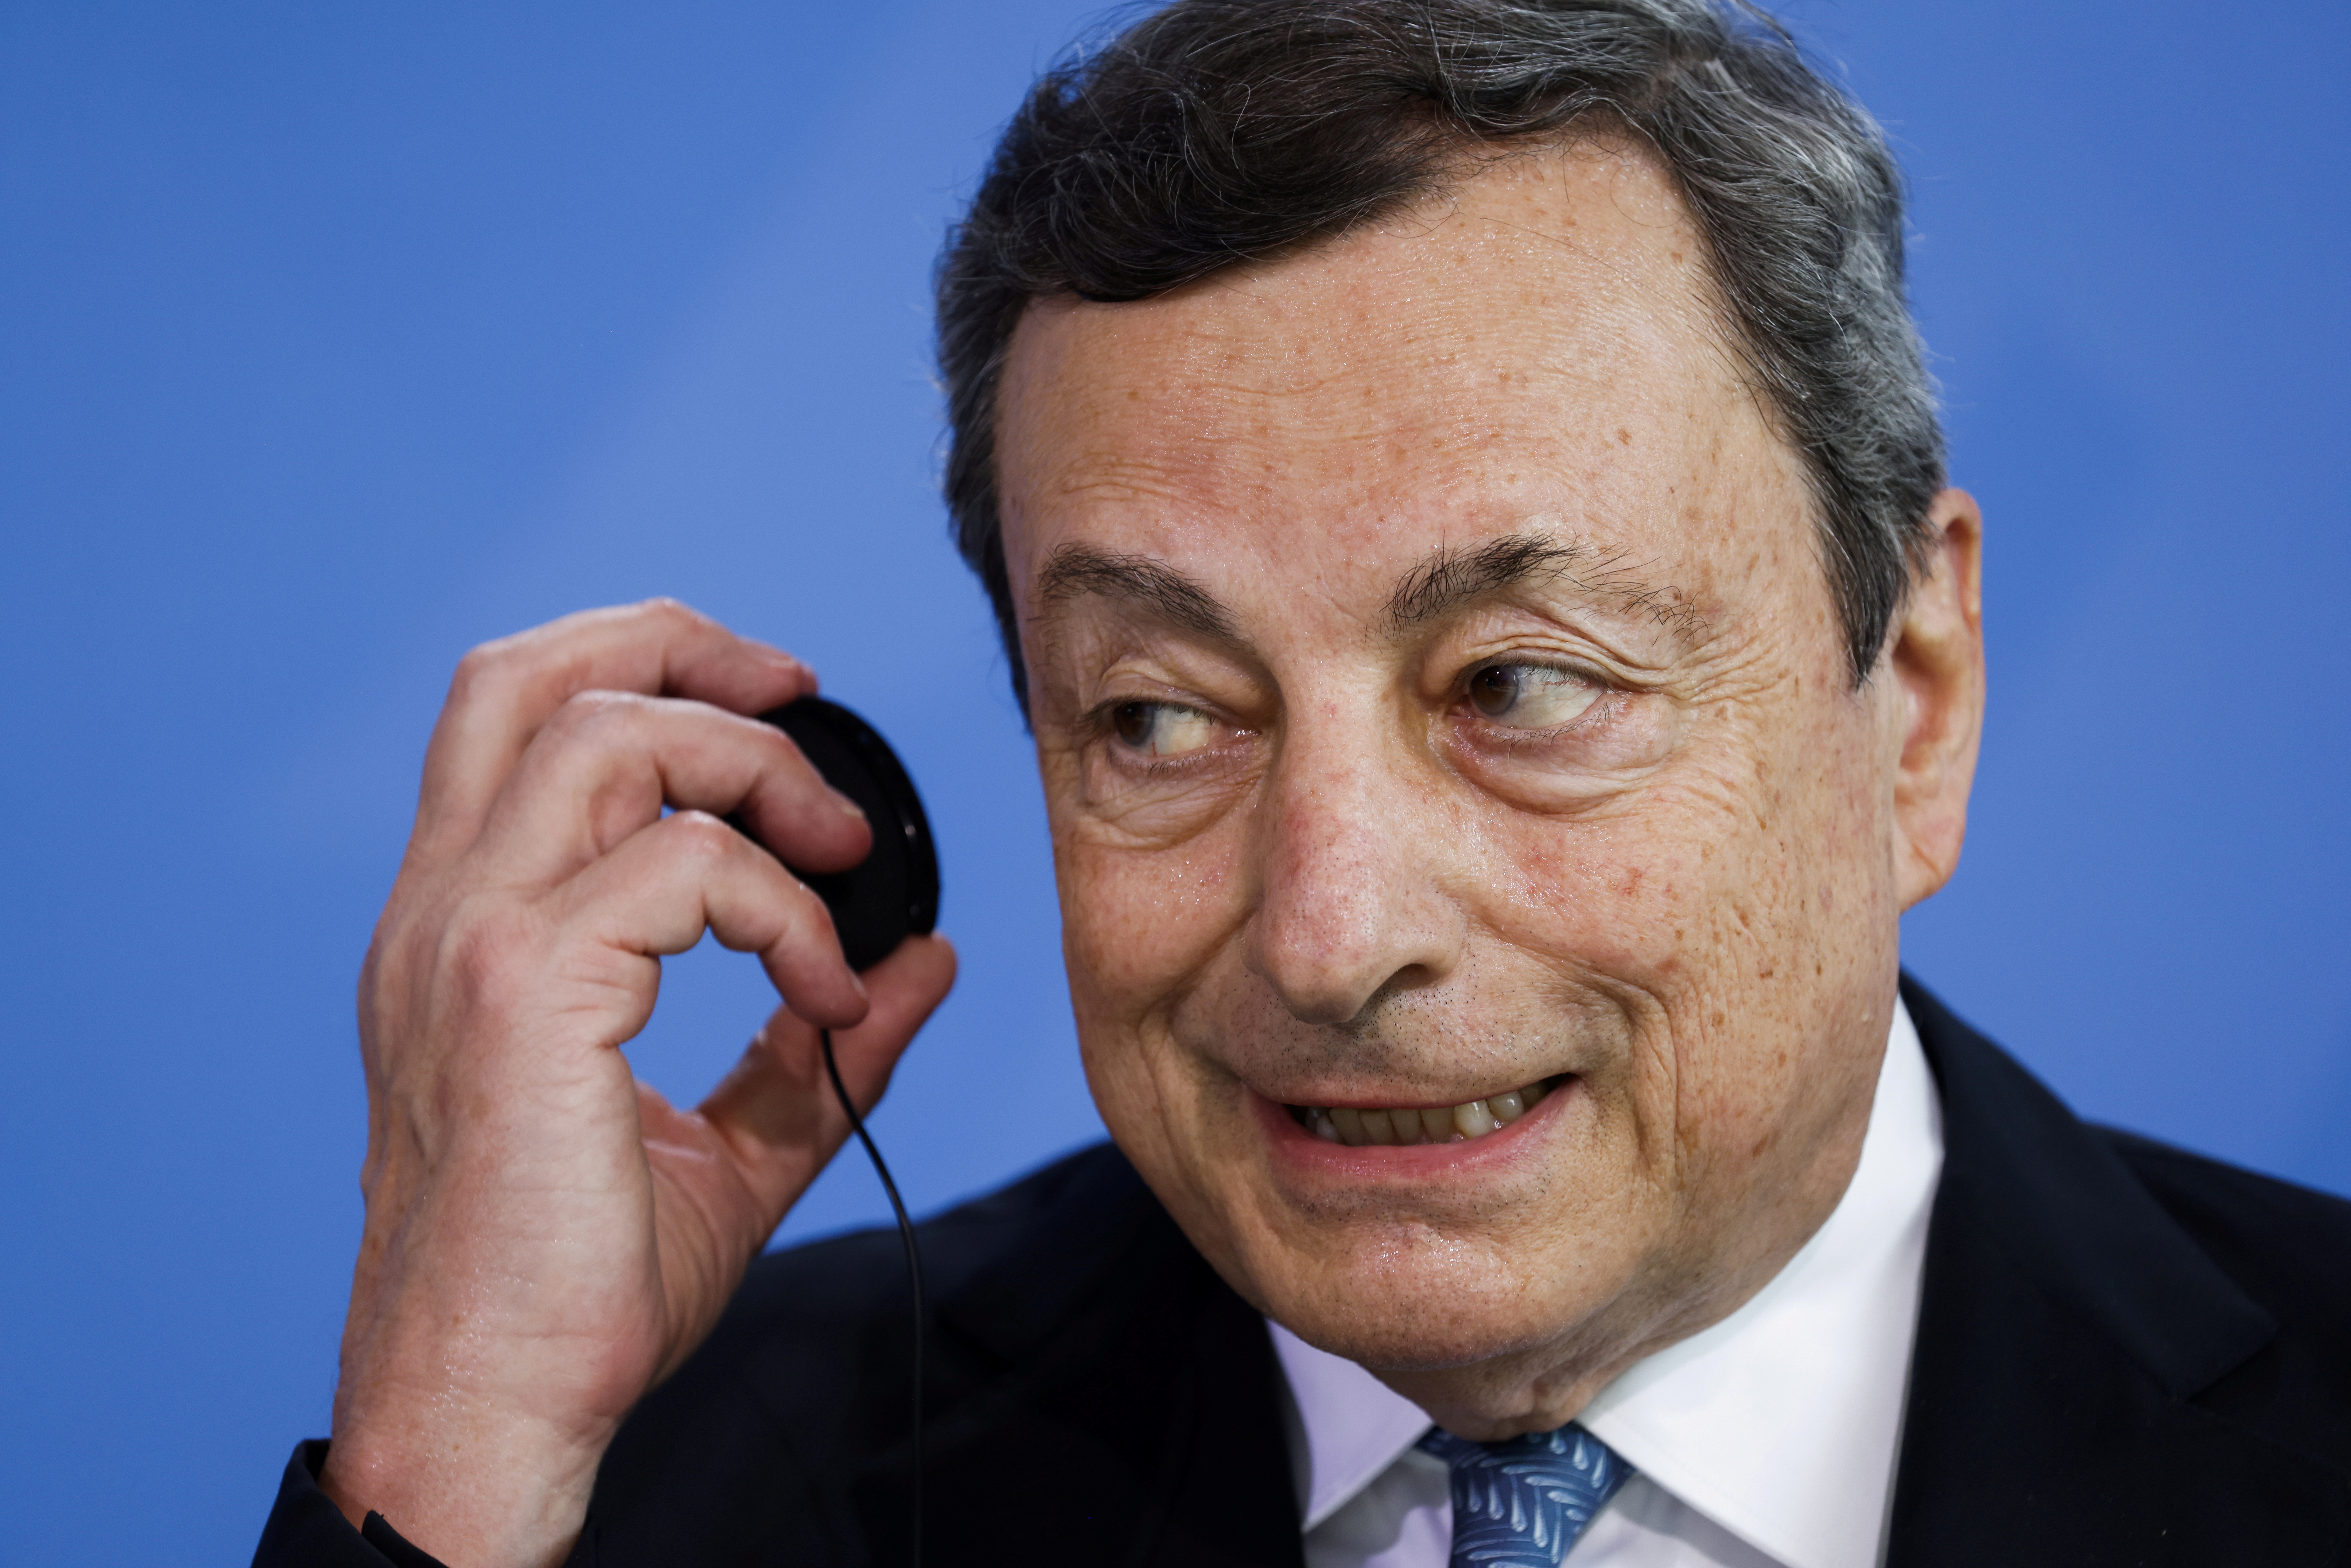 Italian Prime Minister Mario Draghi takes his headsets off after a news conference at the chancellery in Berlin, Germany, June 21, 2021.  Odd Andersen/Pool via REUTERS/File Photo